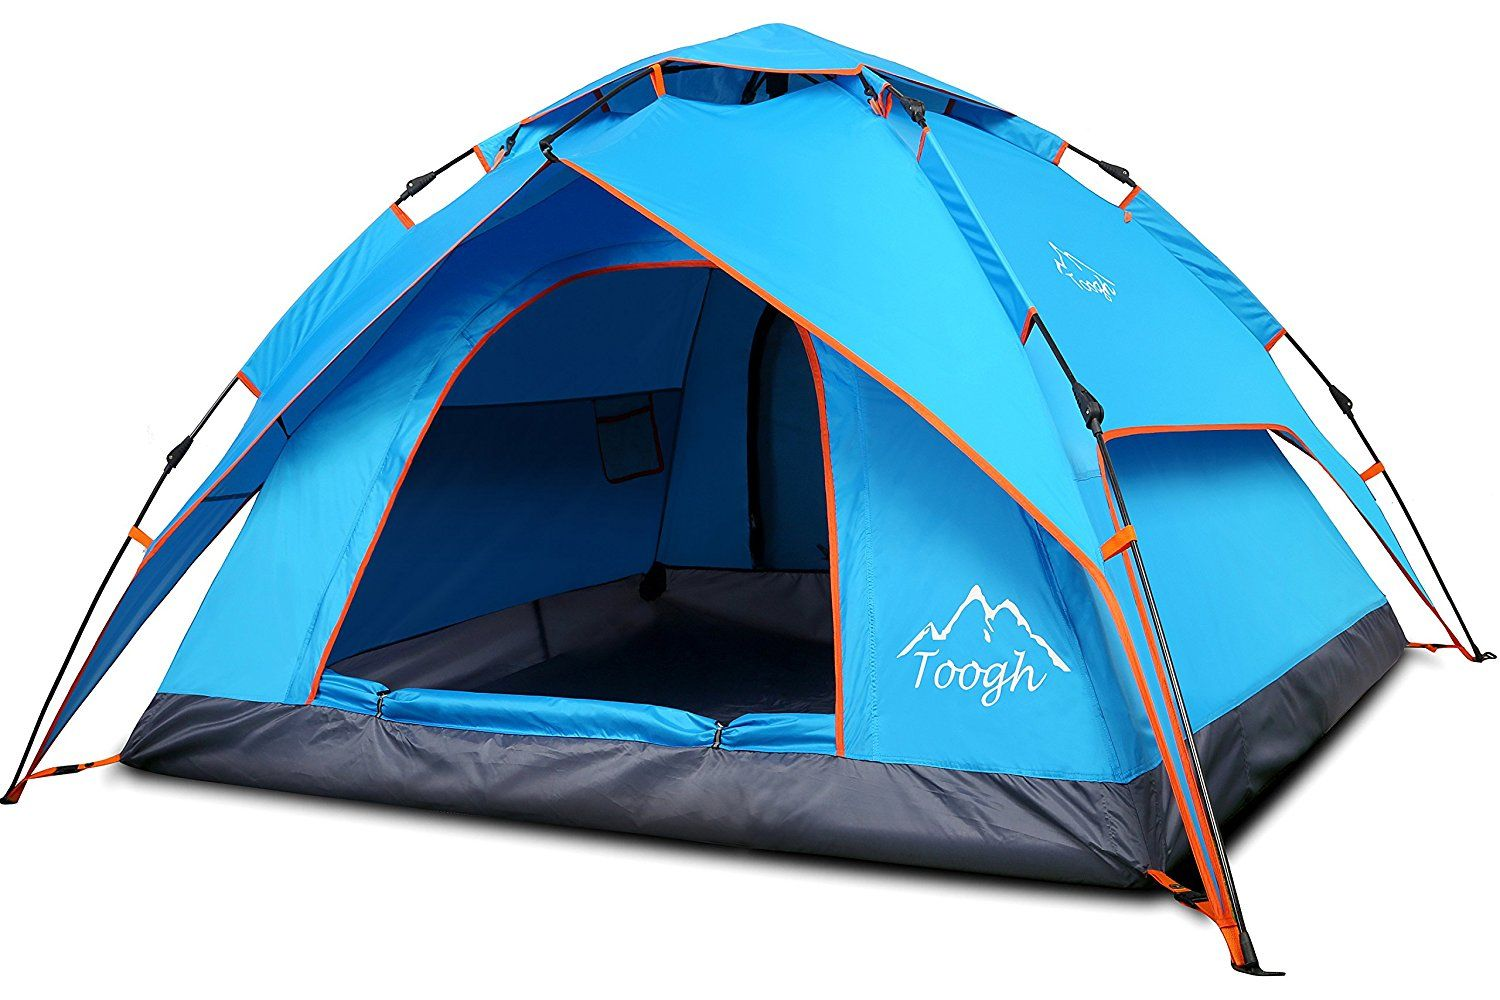 tent pop up tent tents for sale camping tents coleman tents camping